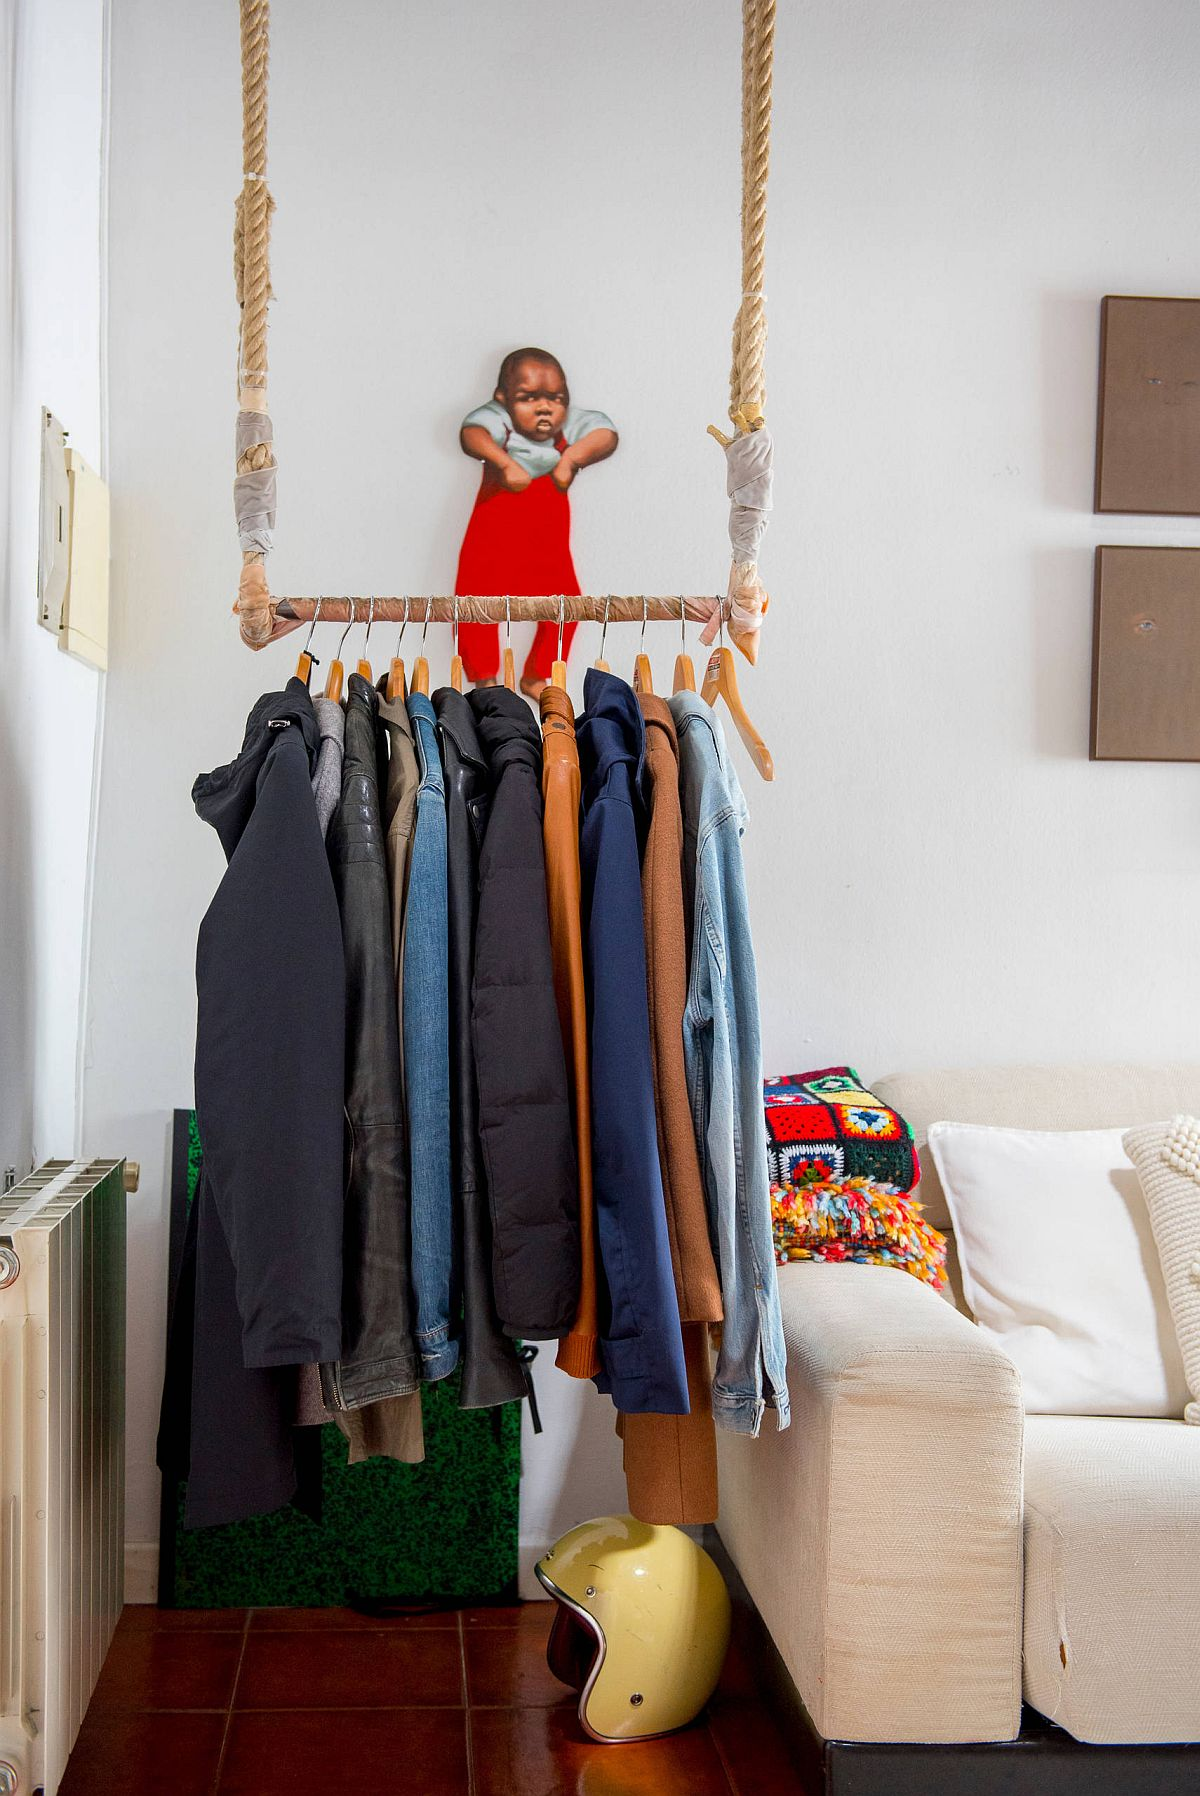 Fun-hanging-rod-can-provide-a-closet-all-on-its-own-42605